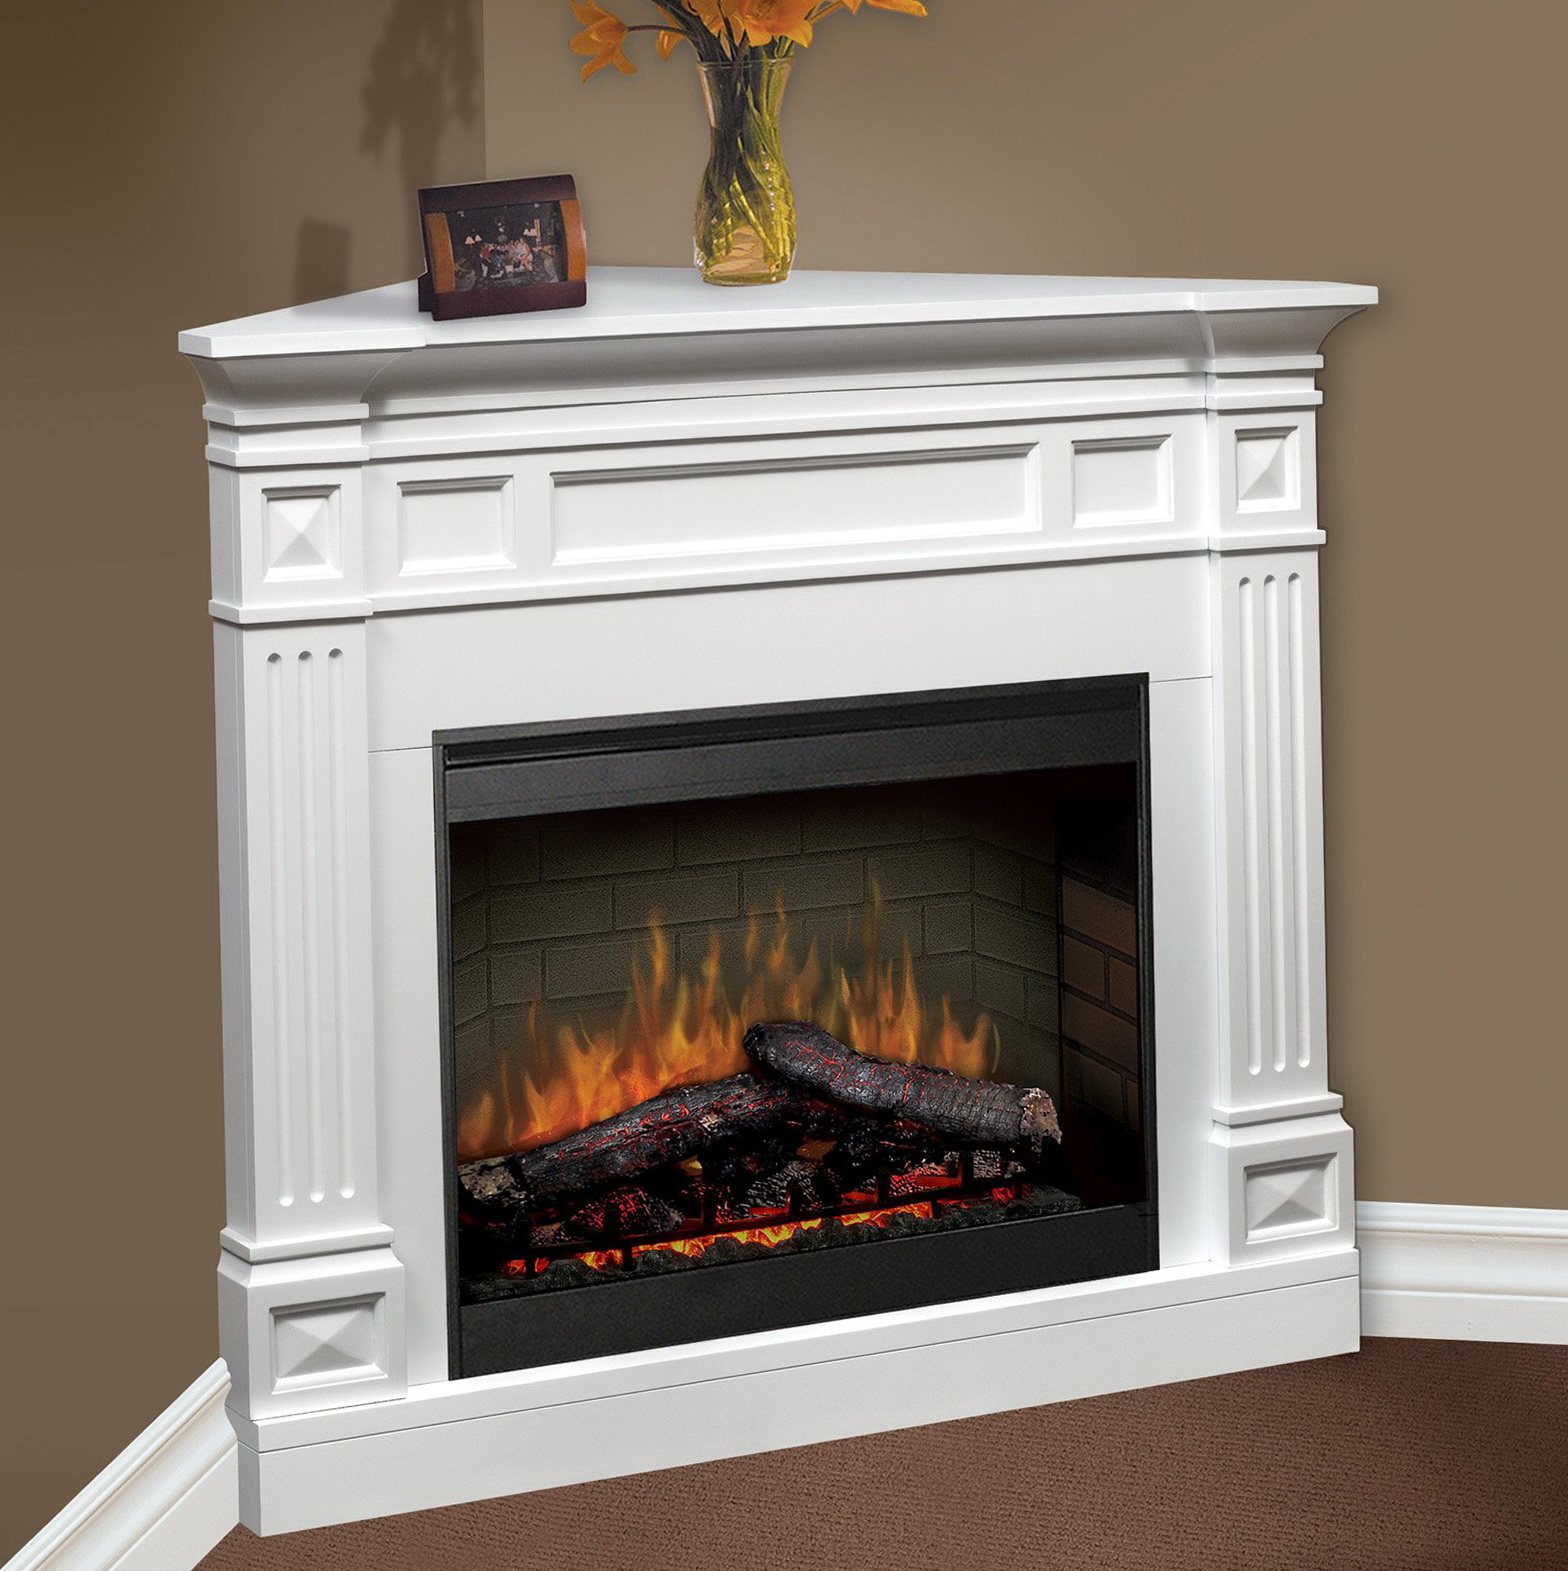 gas corner lighting troubleshooting vented galleries on ventless to light pilot fireplace how without key lowes turn